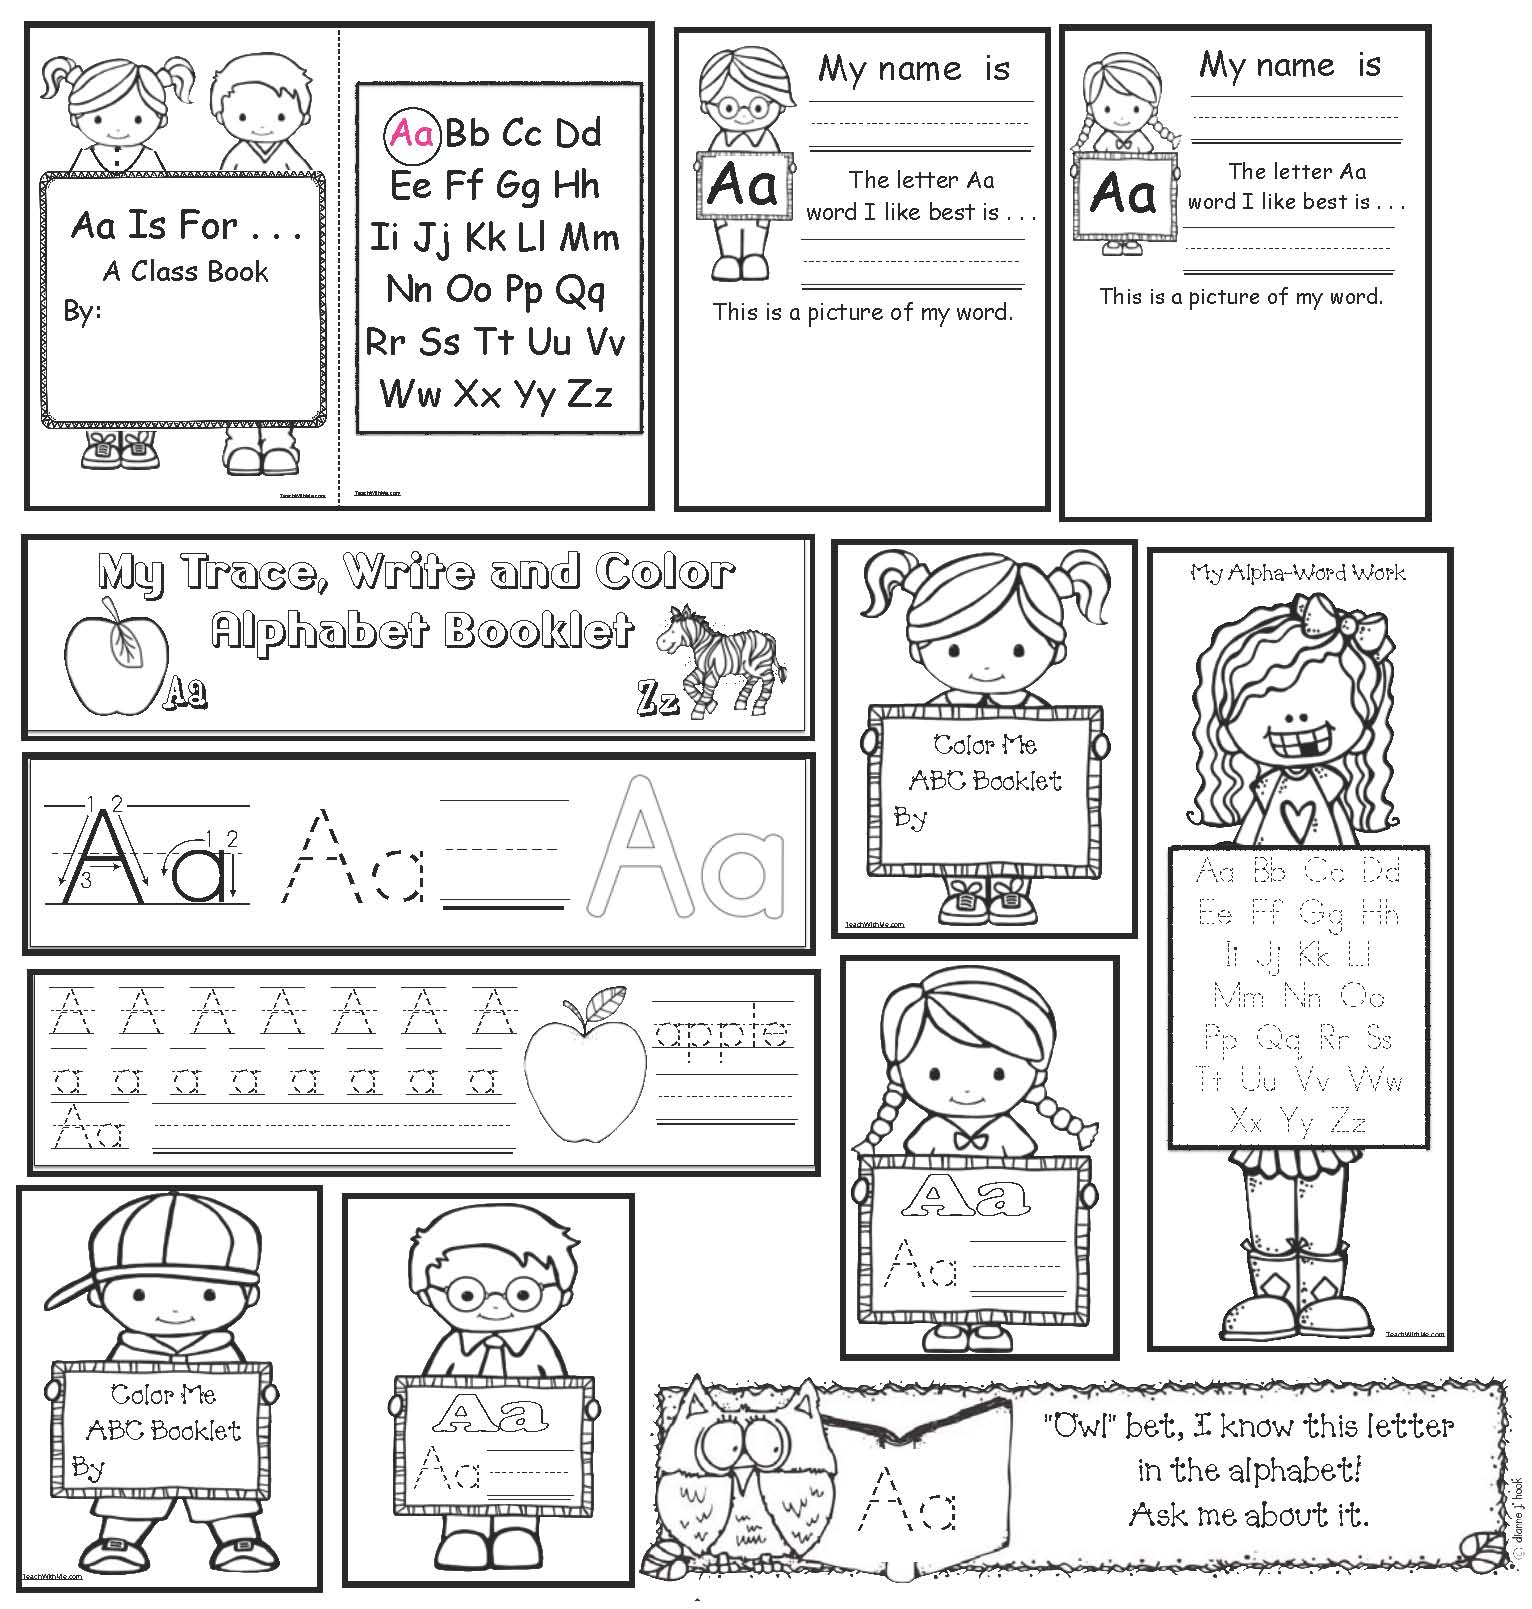 skip counting by 2s, 3s, 5s, & 10s, apple activities, apple crafts, alphabet activities, alphabet games, alphabet crafts, alphabet posters, alphabet worksheets, alphabet emergent readers, letter a activities, letter a crafts, pennant craft